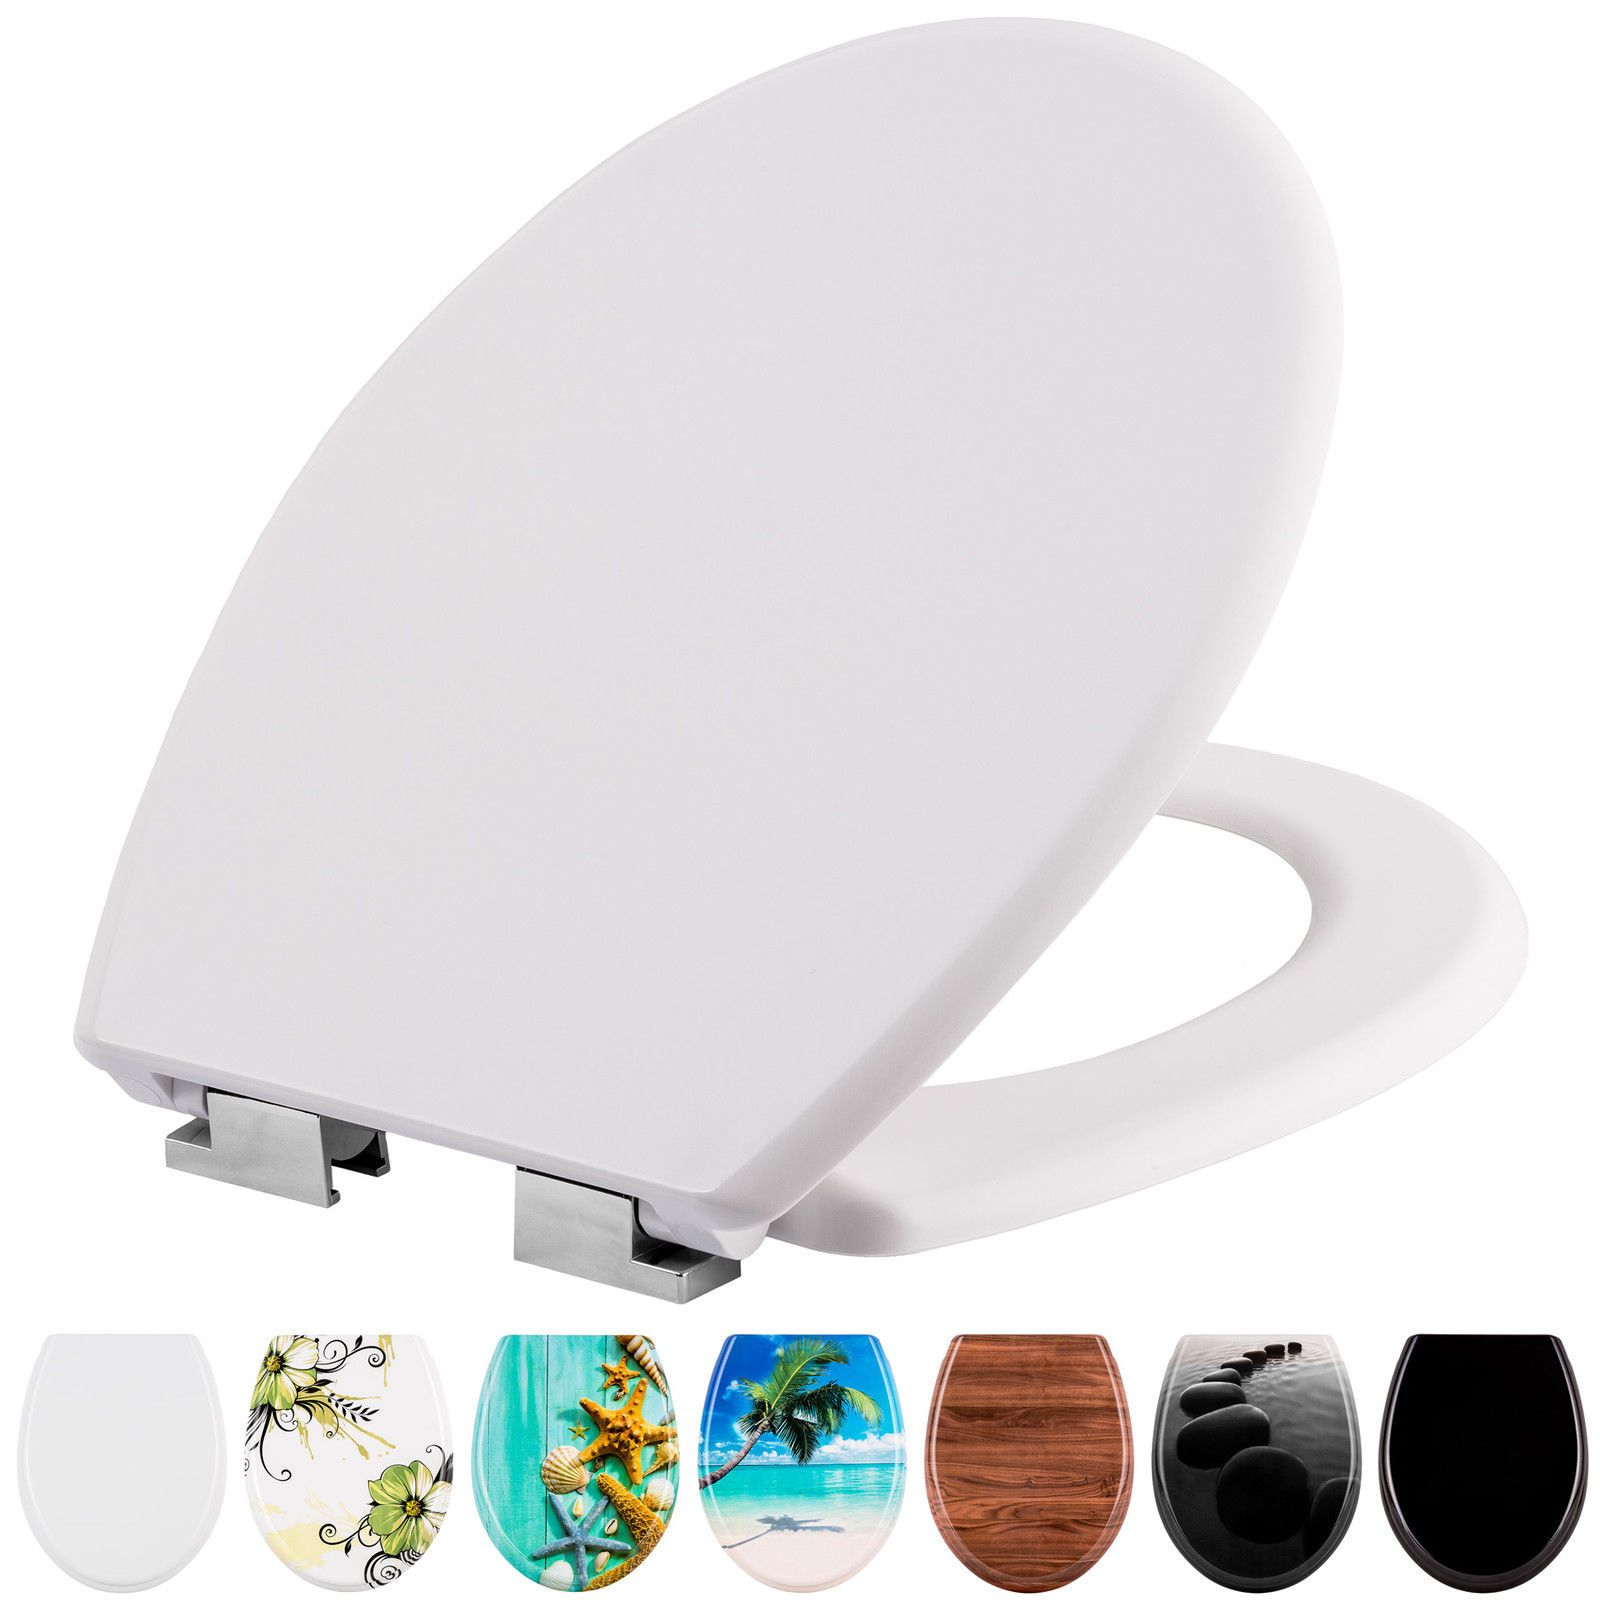 High Quality Printed Wc Toilet Seat Lid Stable Hinges Modern Soft Close In 2020 Toilet Seat Toilet Ebay